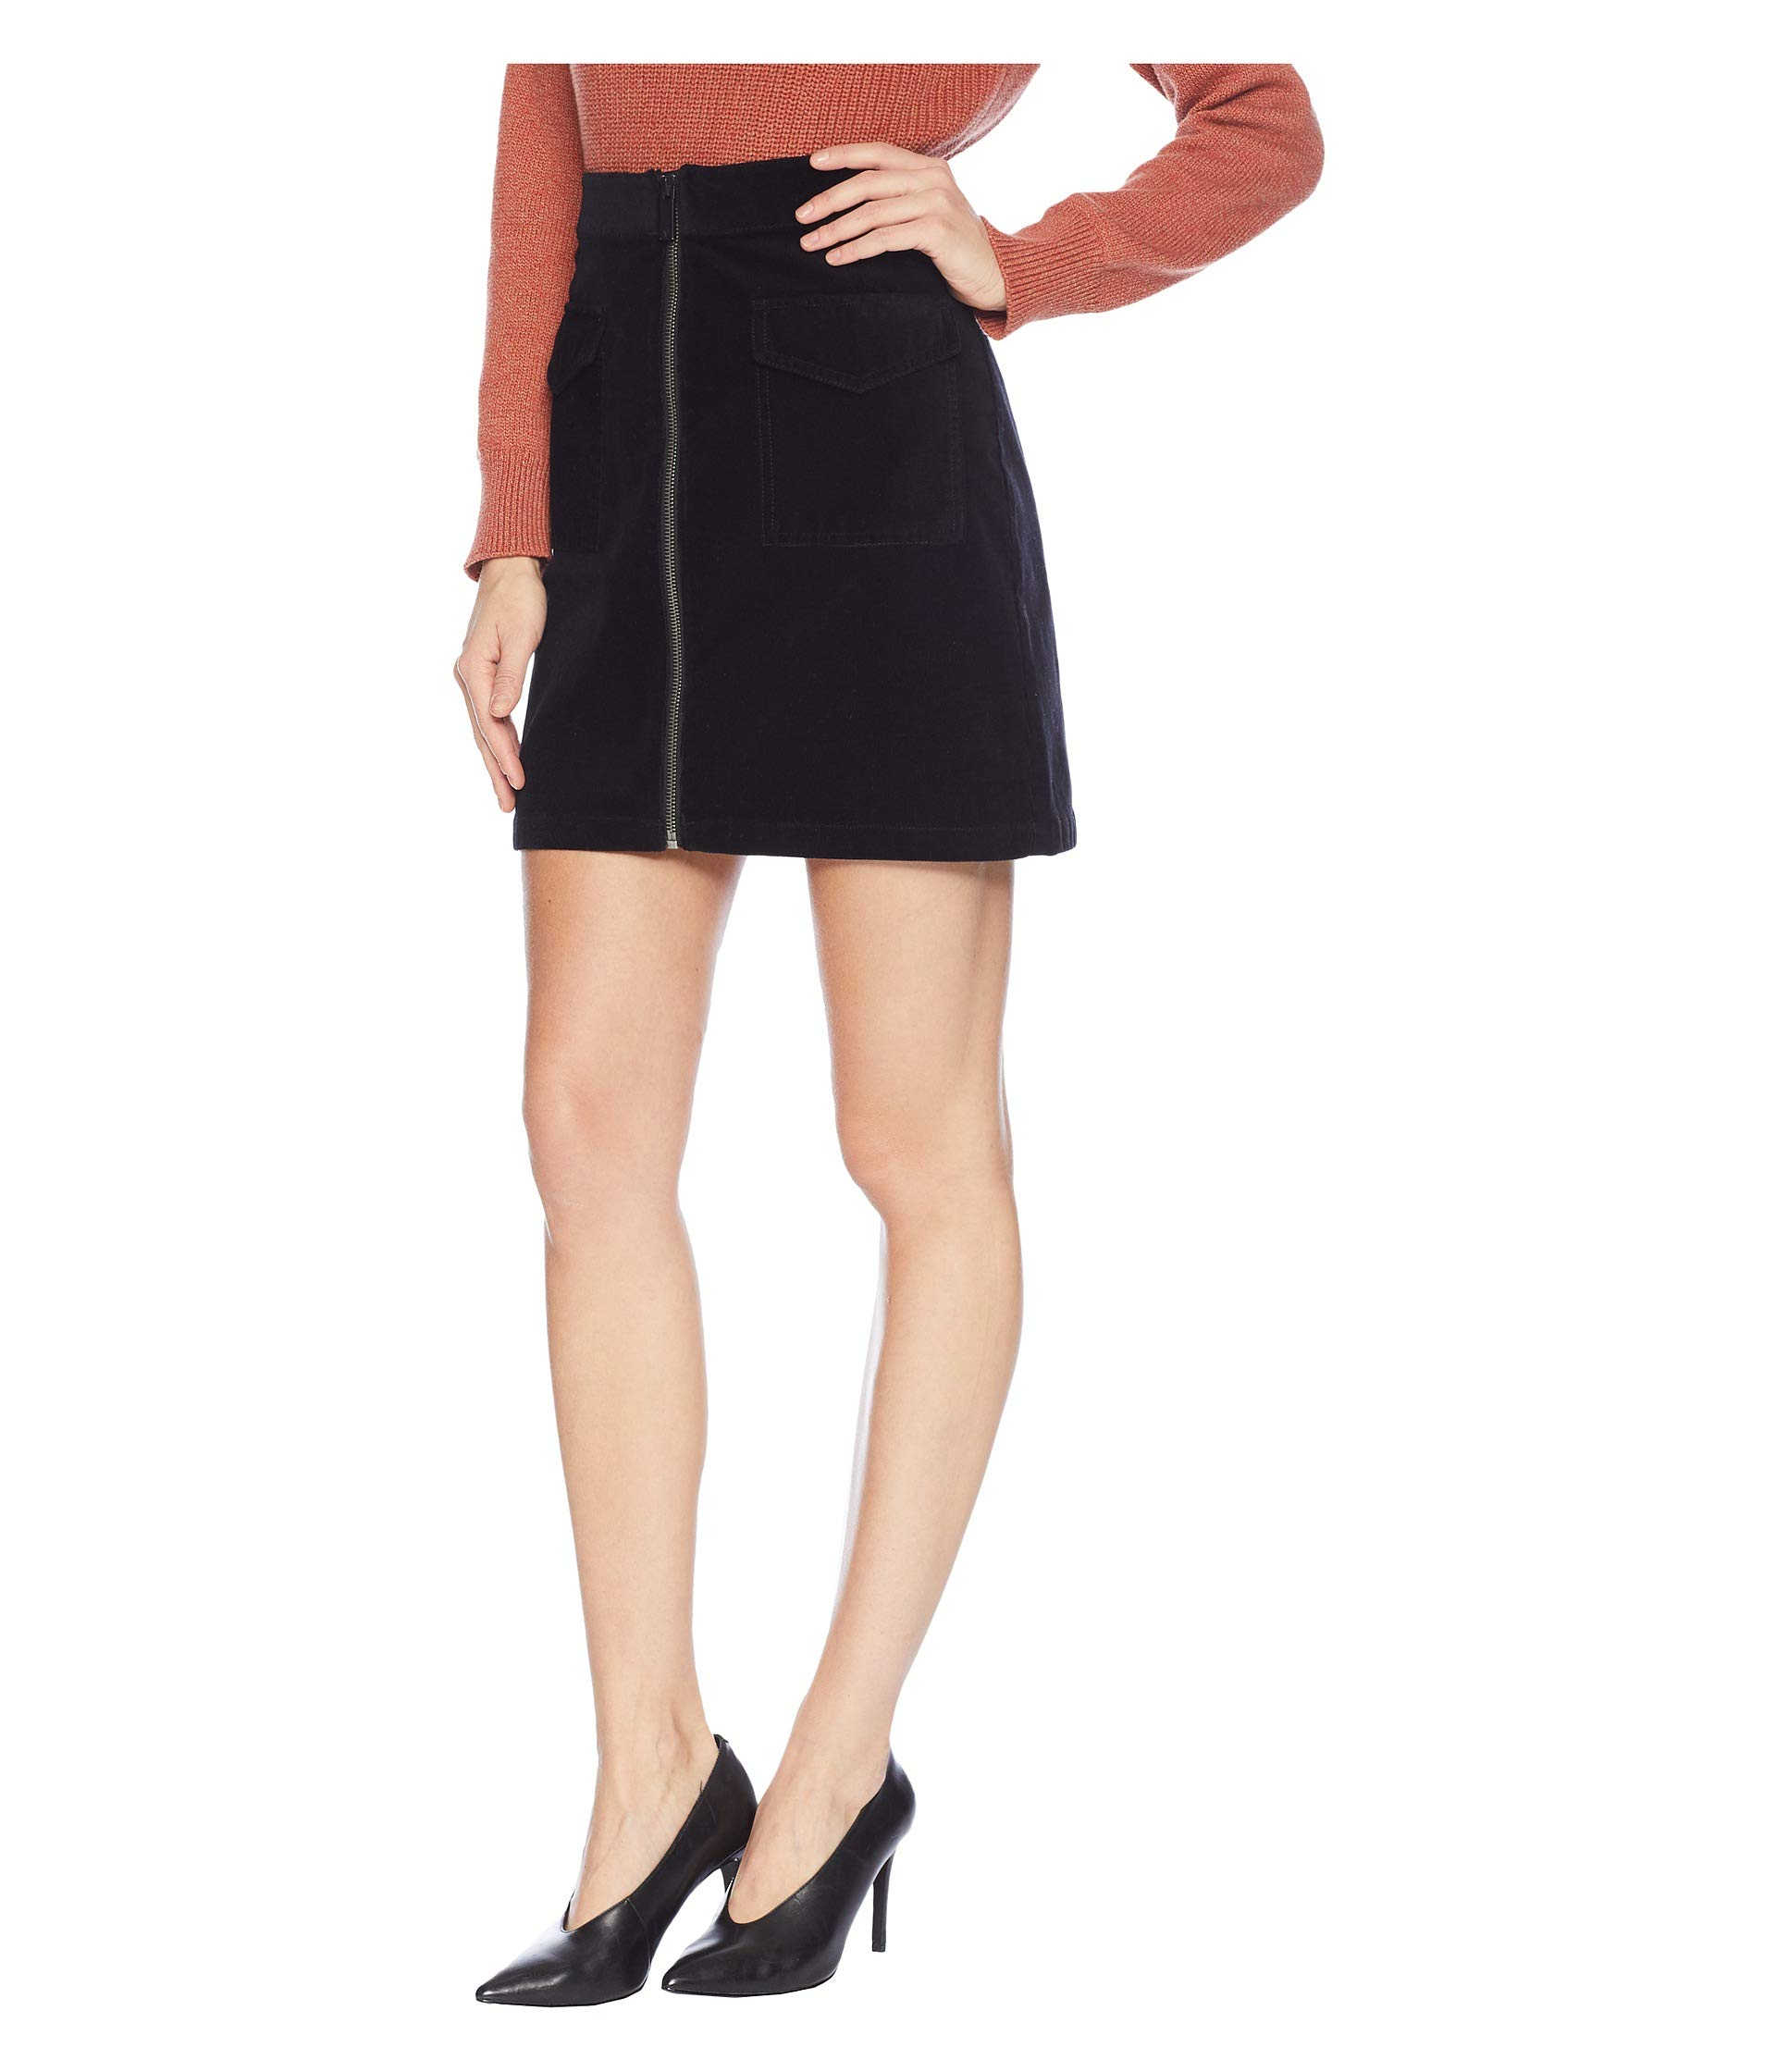 Zip Two Black pocket Rich Corduroy By Washed Two Vince Camuto Skirt qXxRqH0